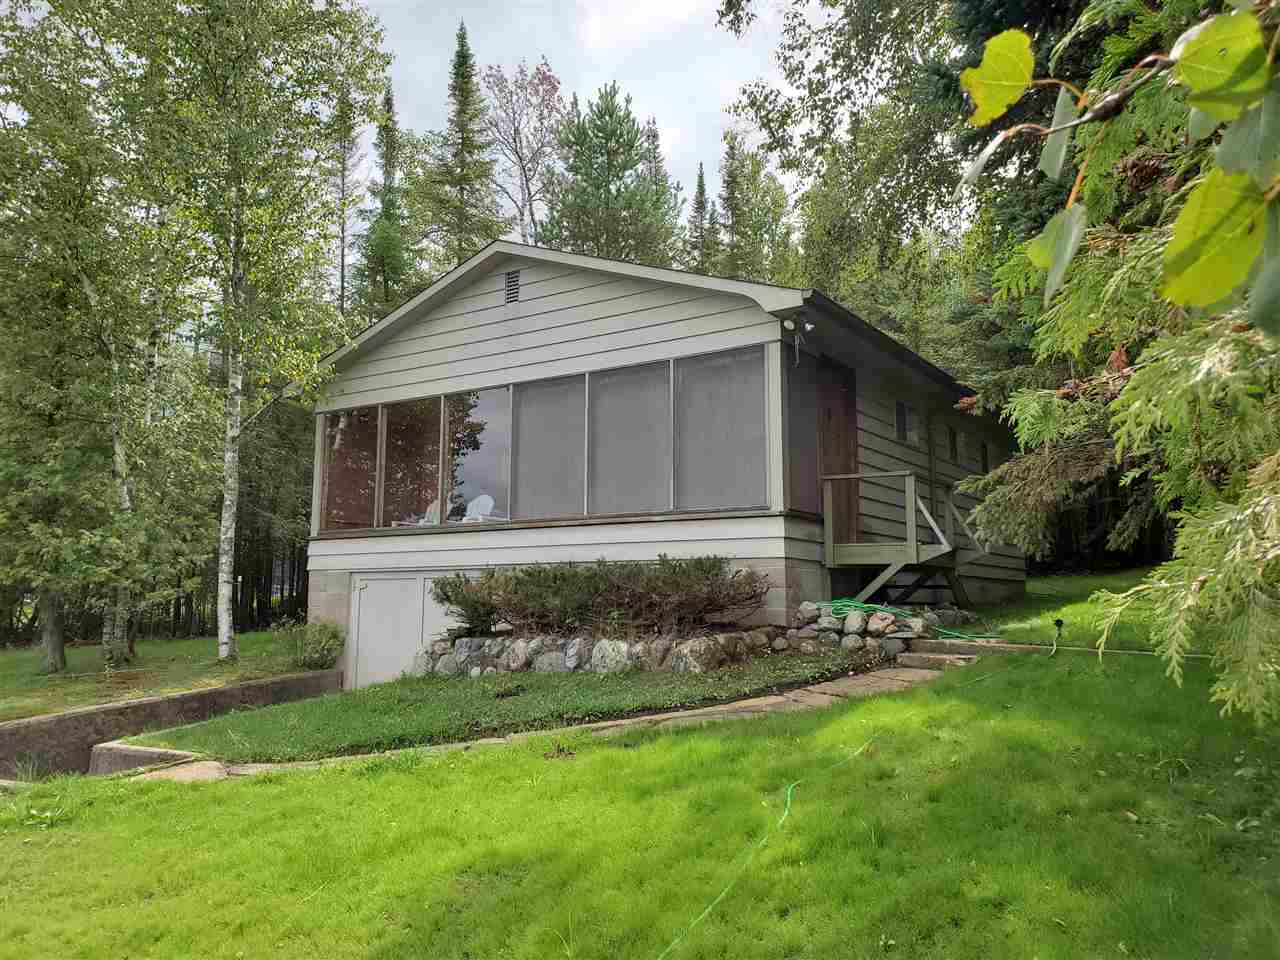 MLS 463233 - 07945  Cedar Lane , East Jordan, MI